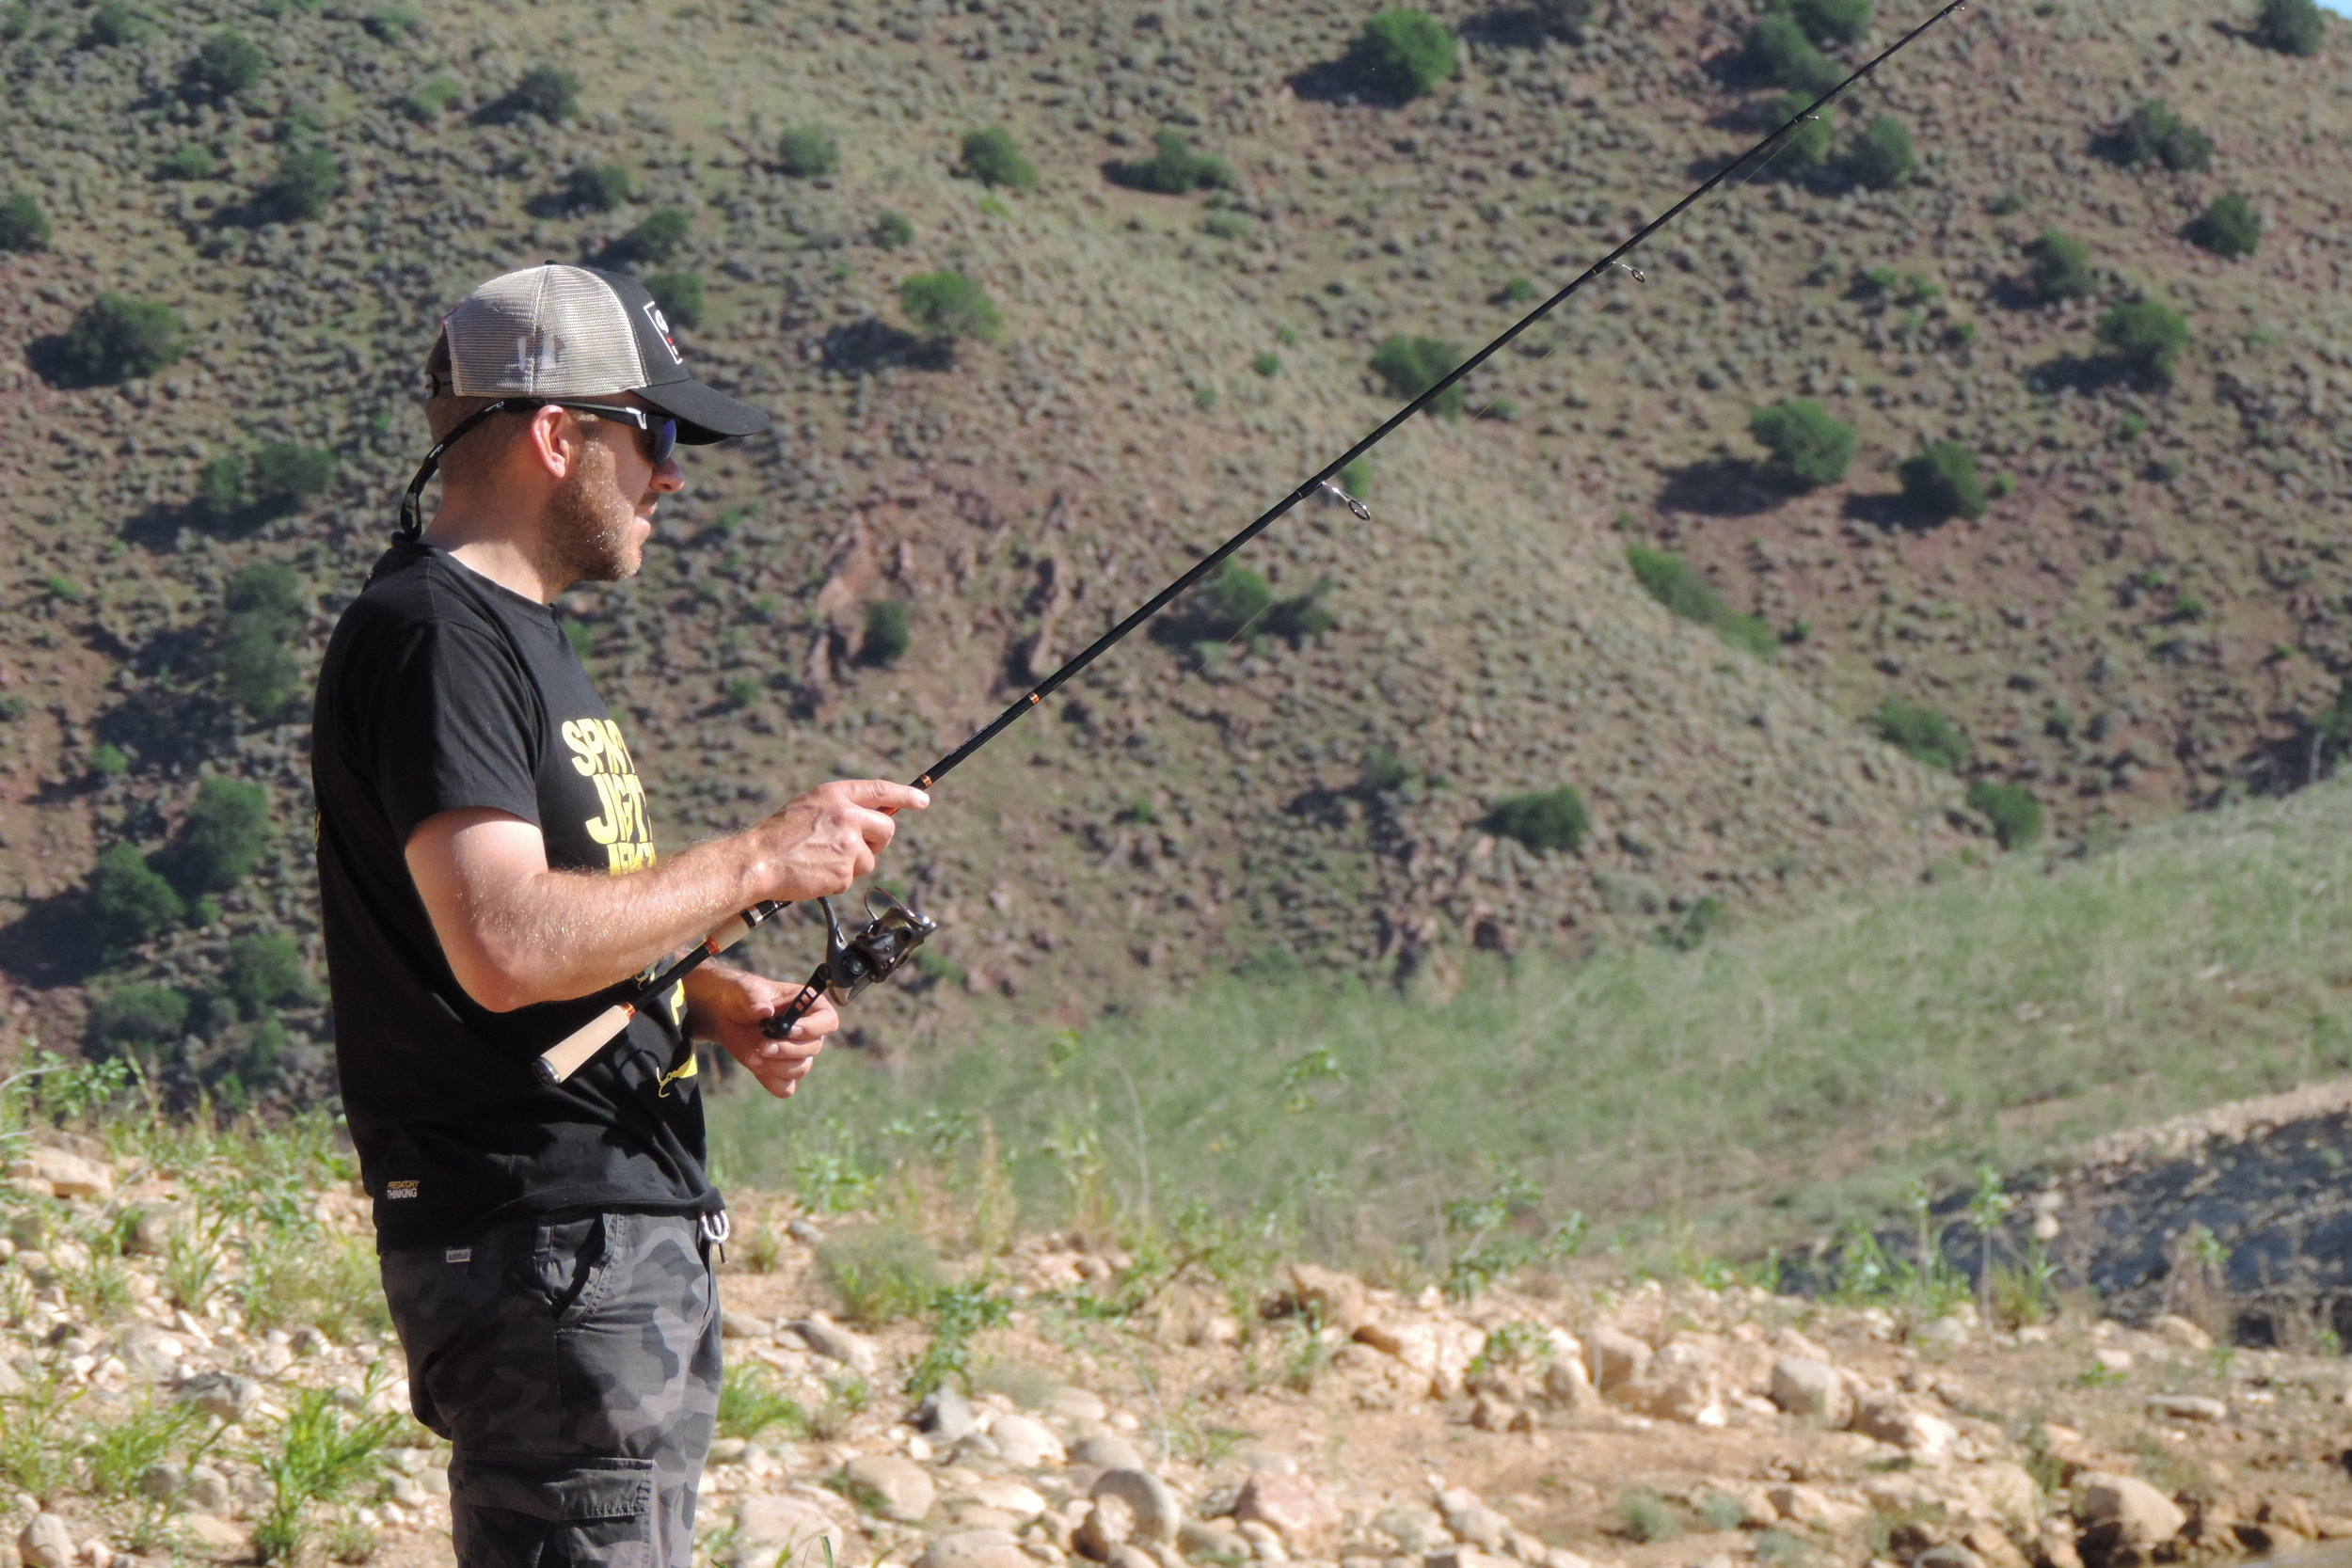 Just slowly reeling in the c-rig to keep my soft bait in the strike zone.